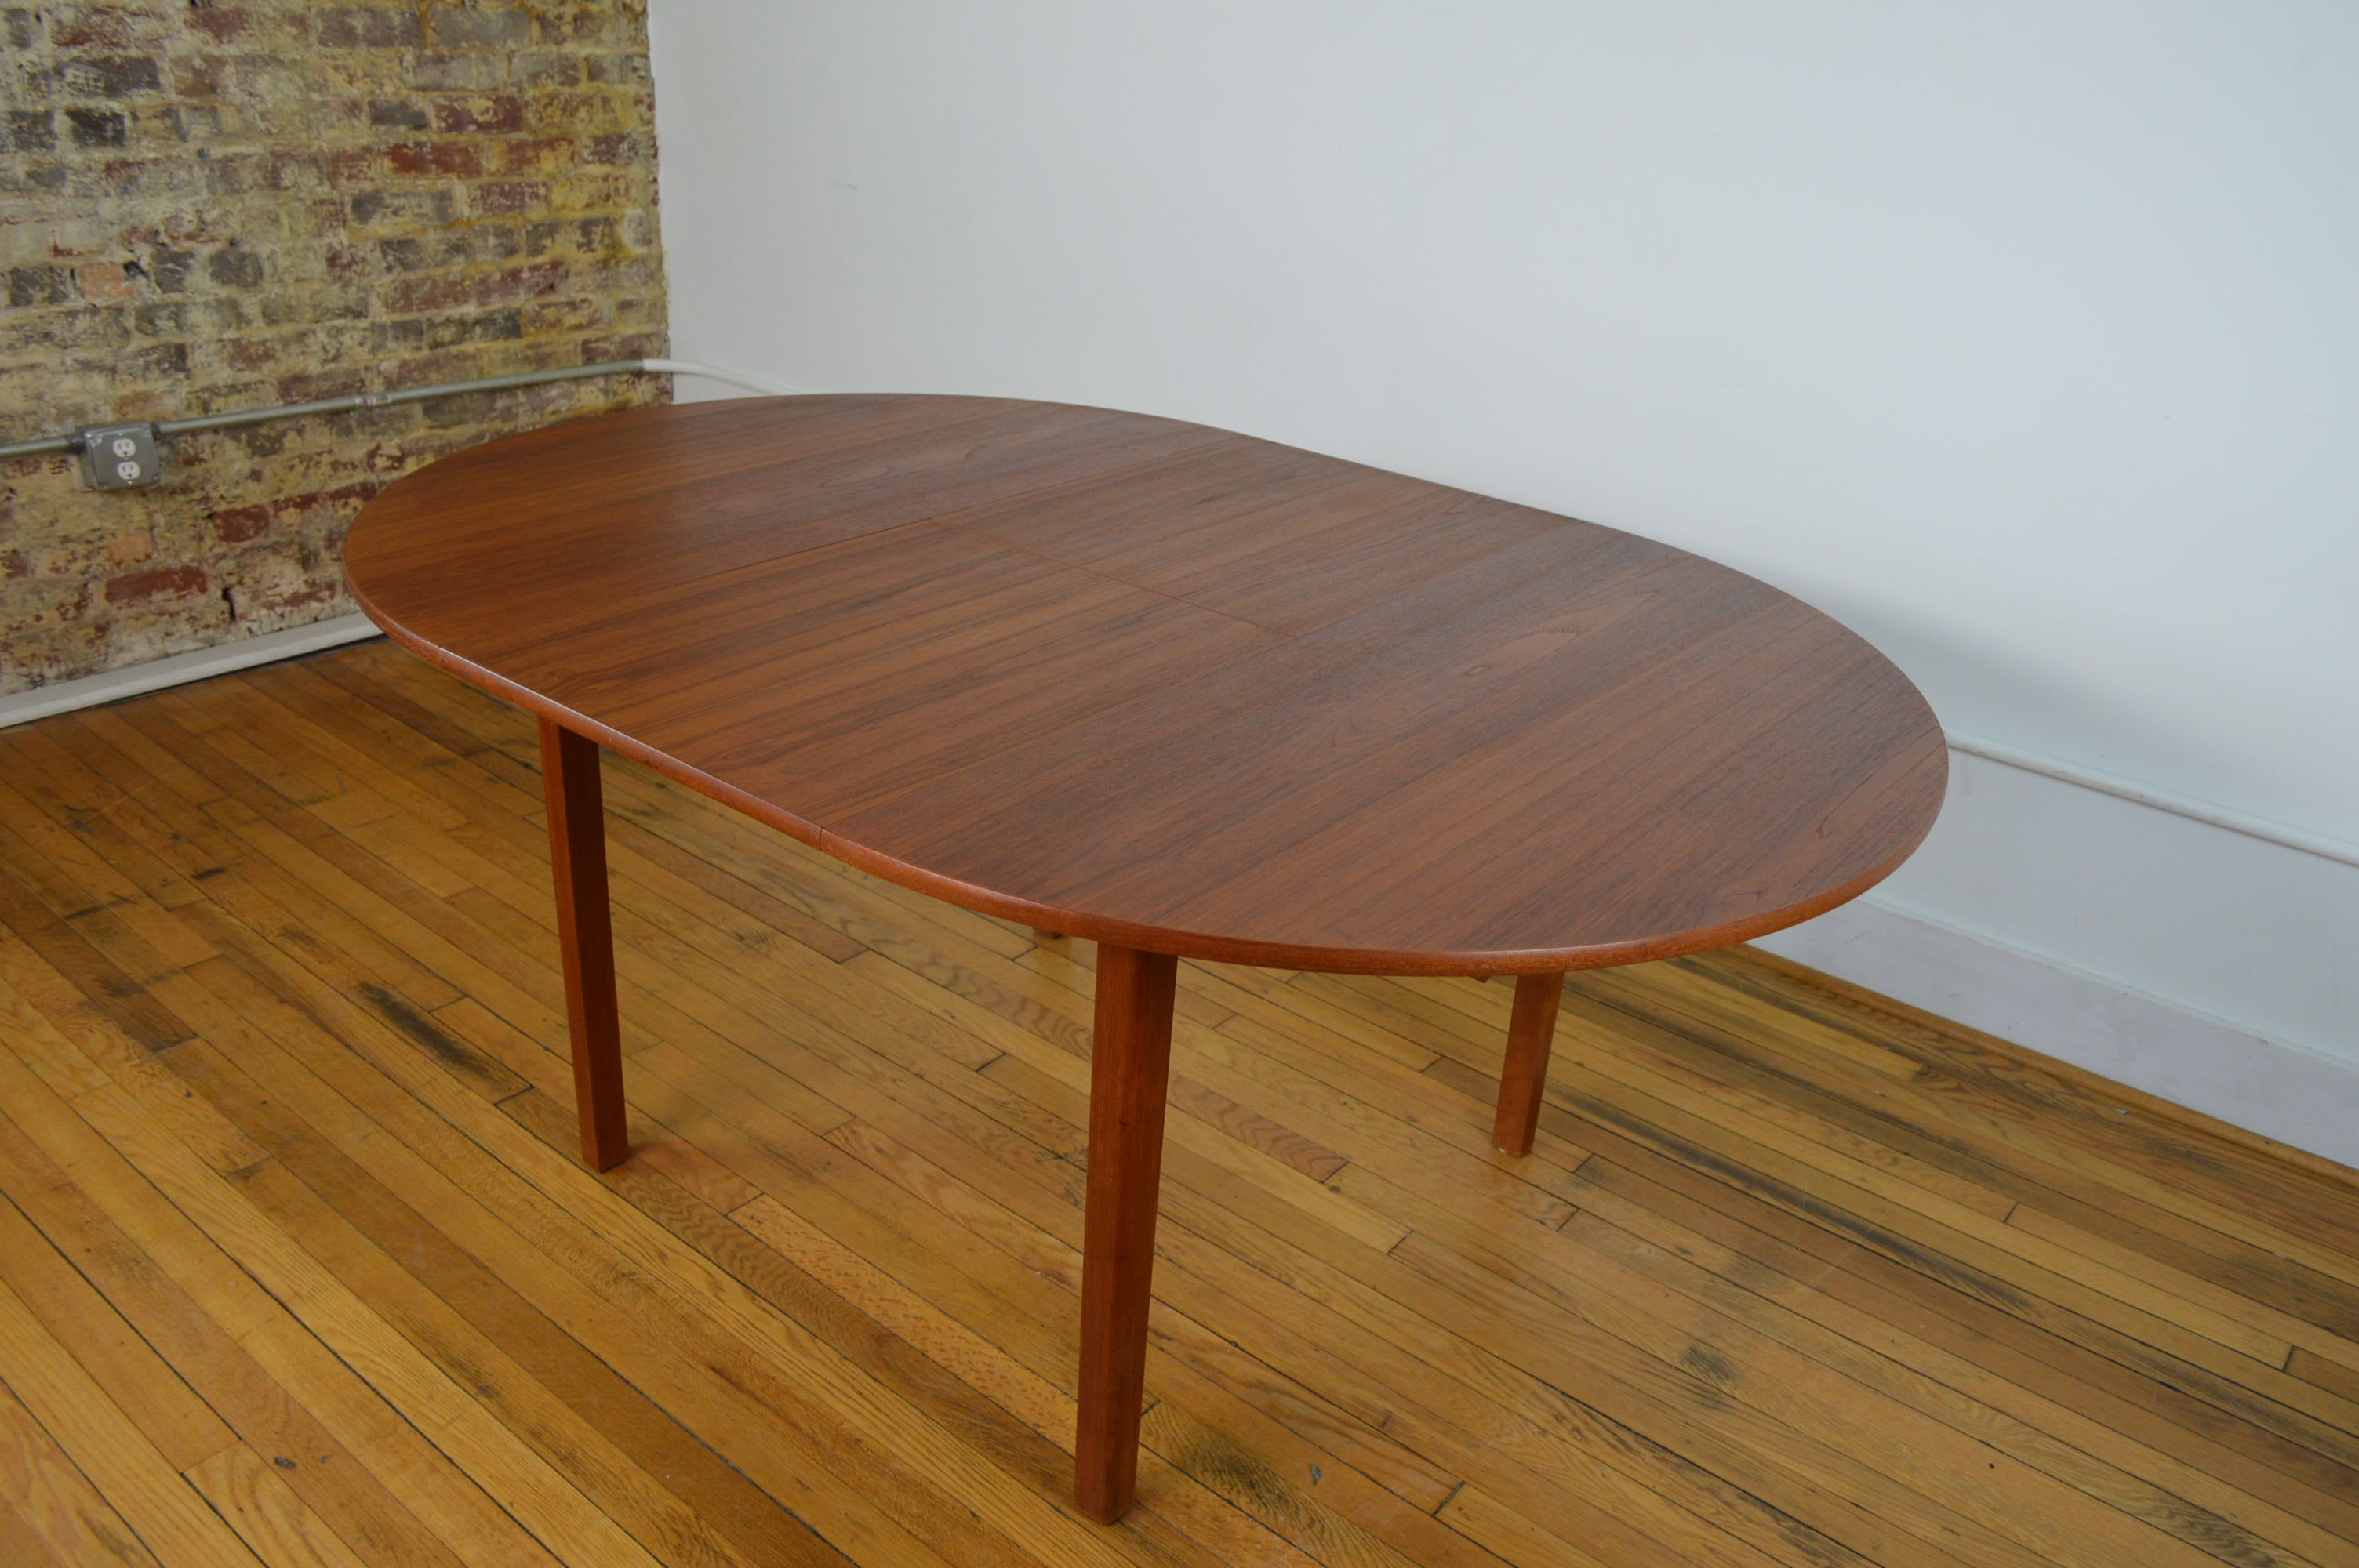 Danish Teak Dining Table With Butterfly Extension Leaf GalaxieModern - Danish modern dining table with leaves